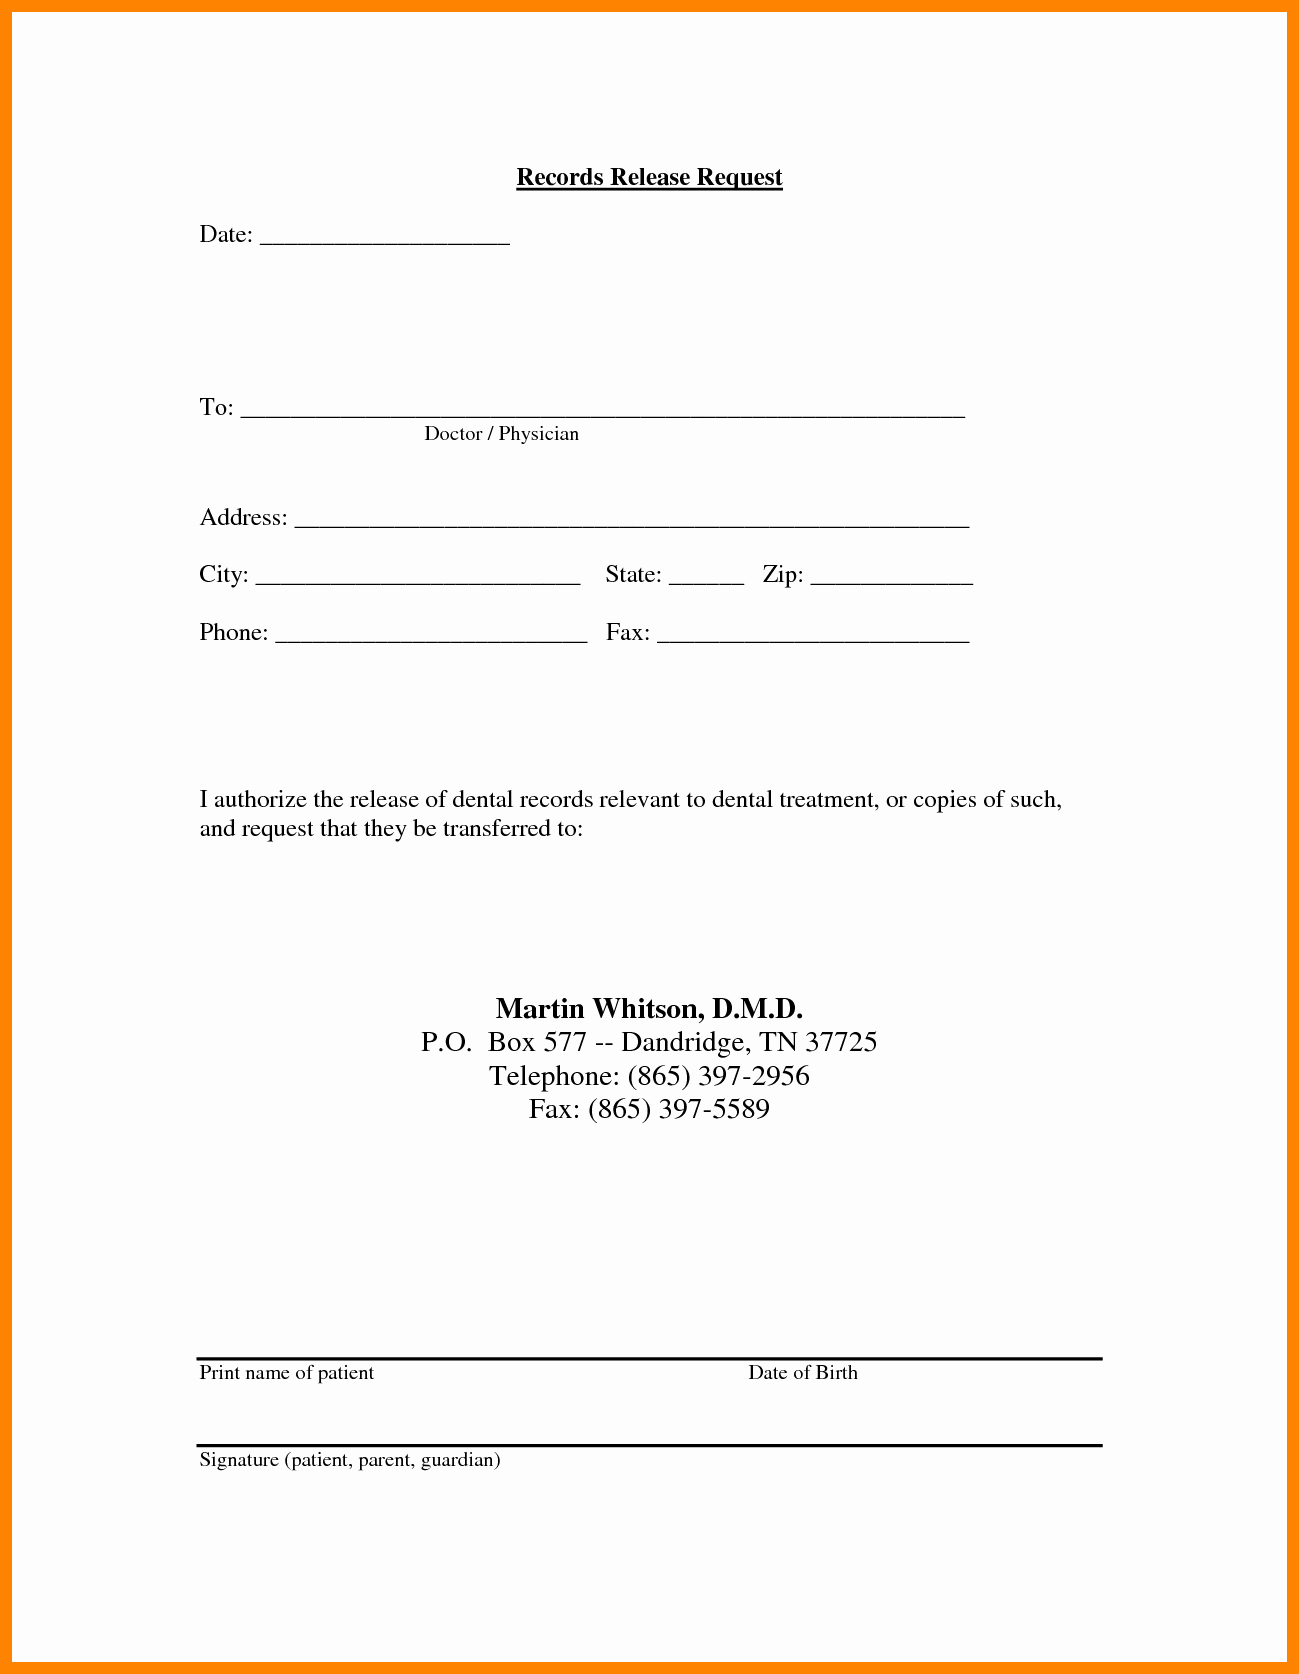 Hipaa Release Form Template Lovely Medical Records Release Forms